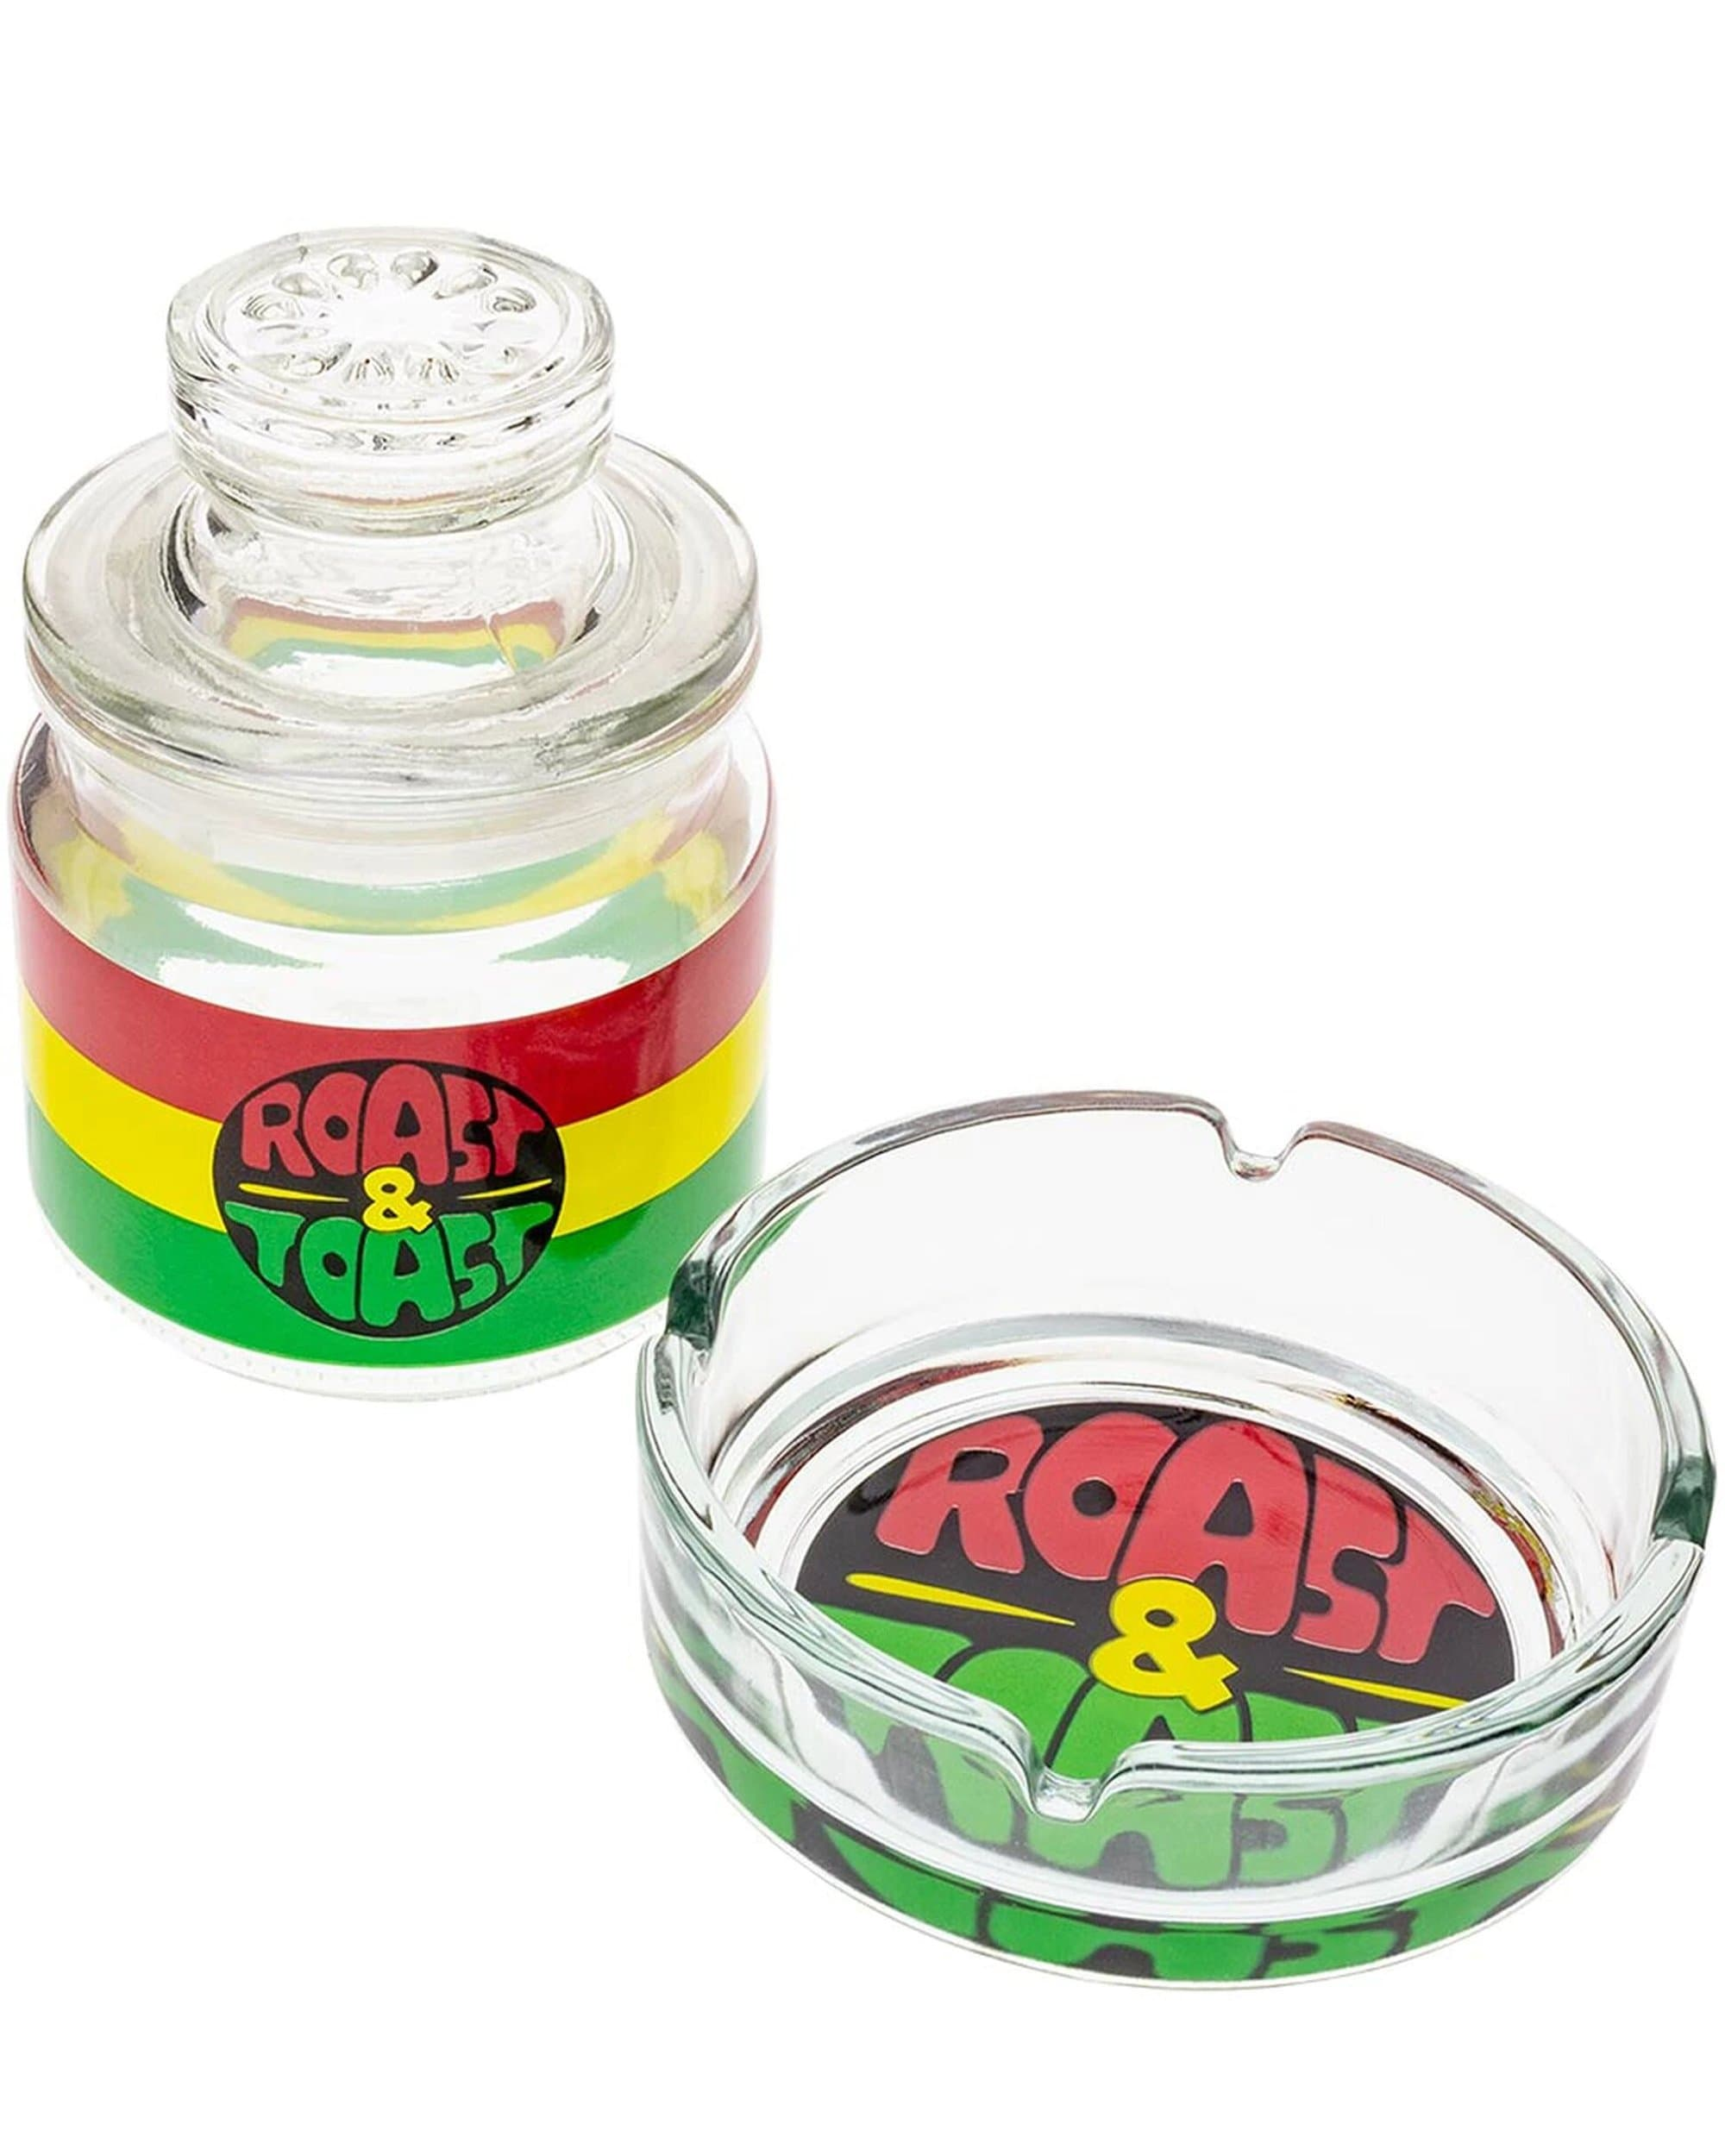 Premium Roast & Toast - Stash Jar & Ashtray Set